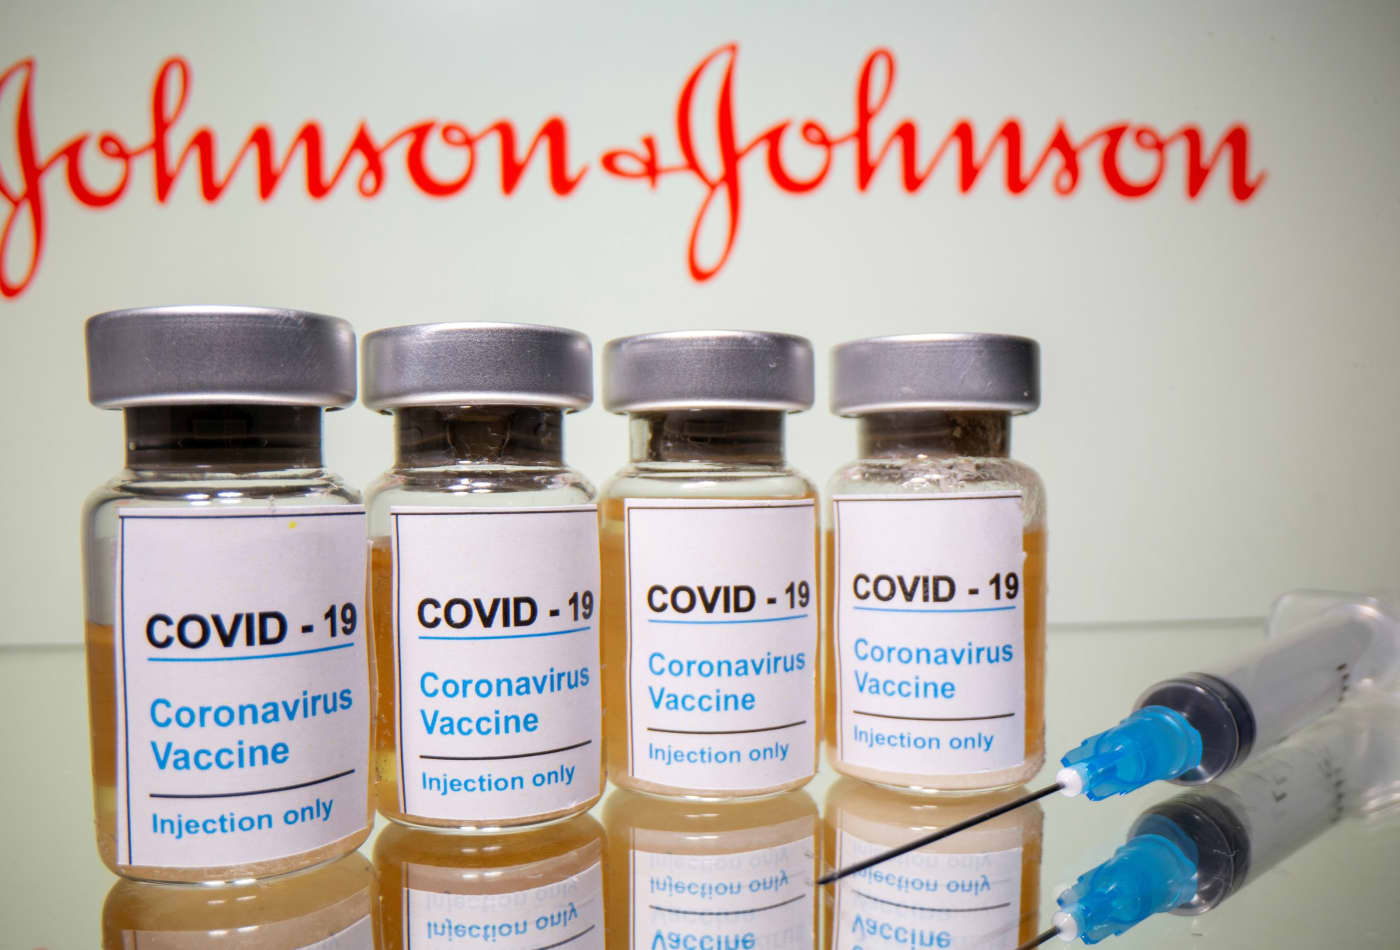 J&J: One-Shot COVID-19 Vaccine Is Safe, Generates 'Promising' Immune Response